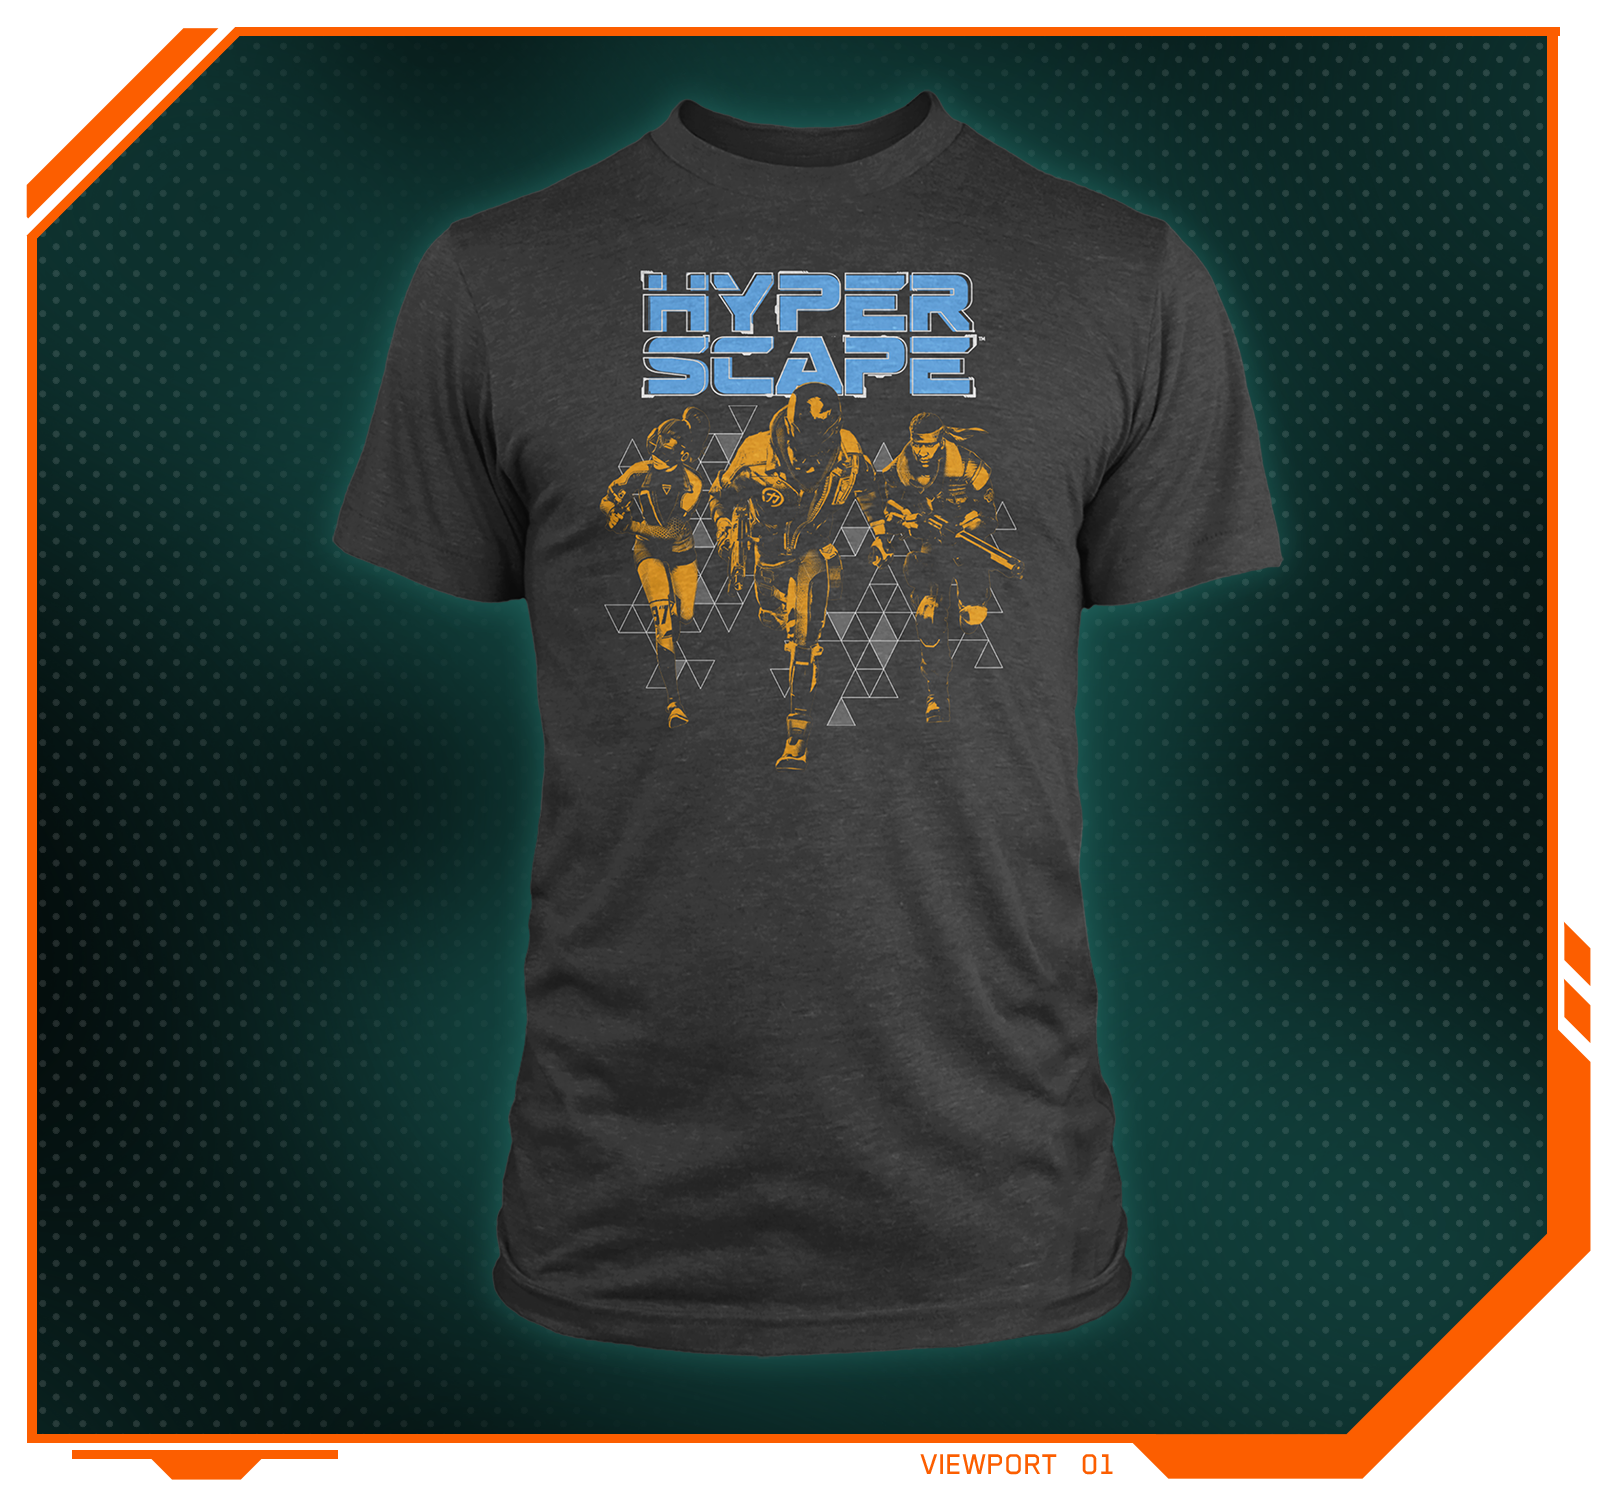 Stylized product image of the Hyper Scape Team Running Premium Tee